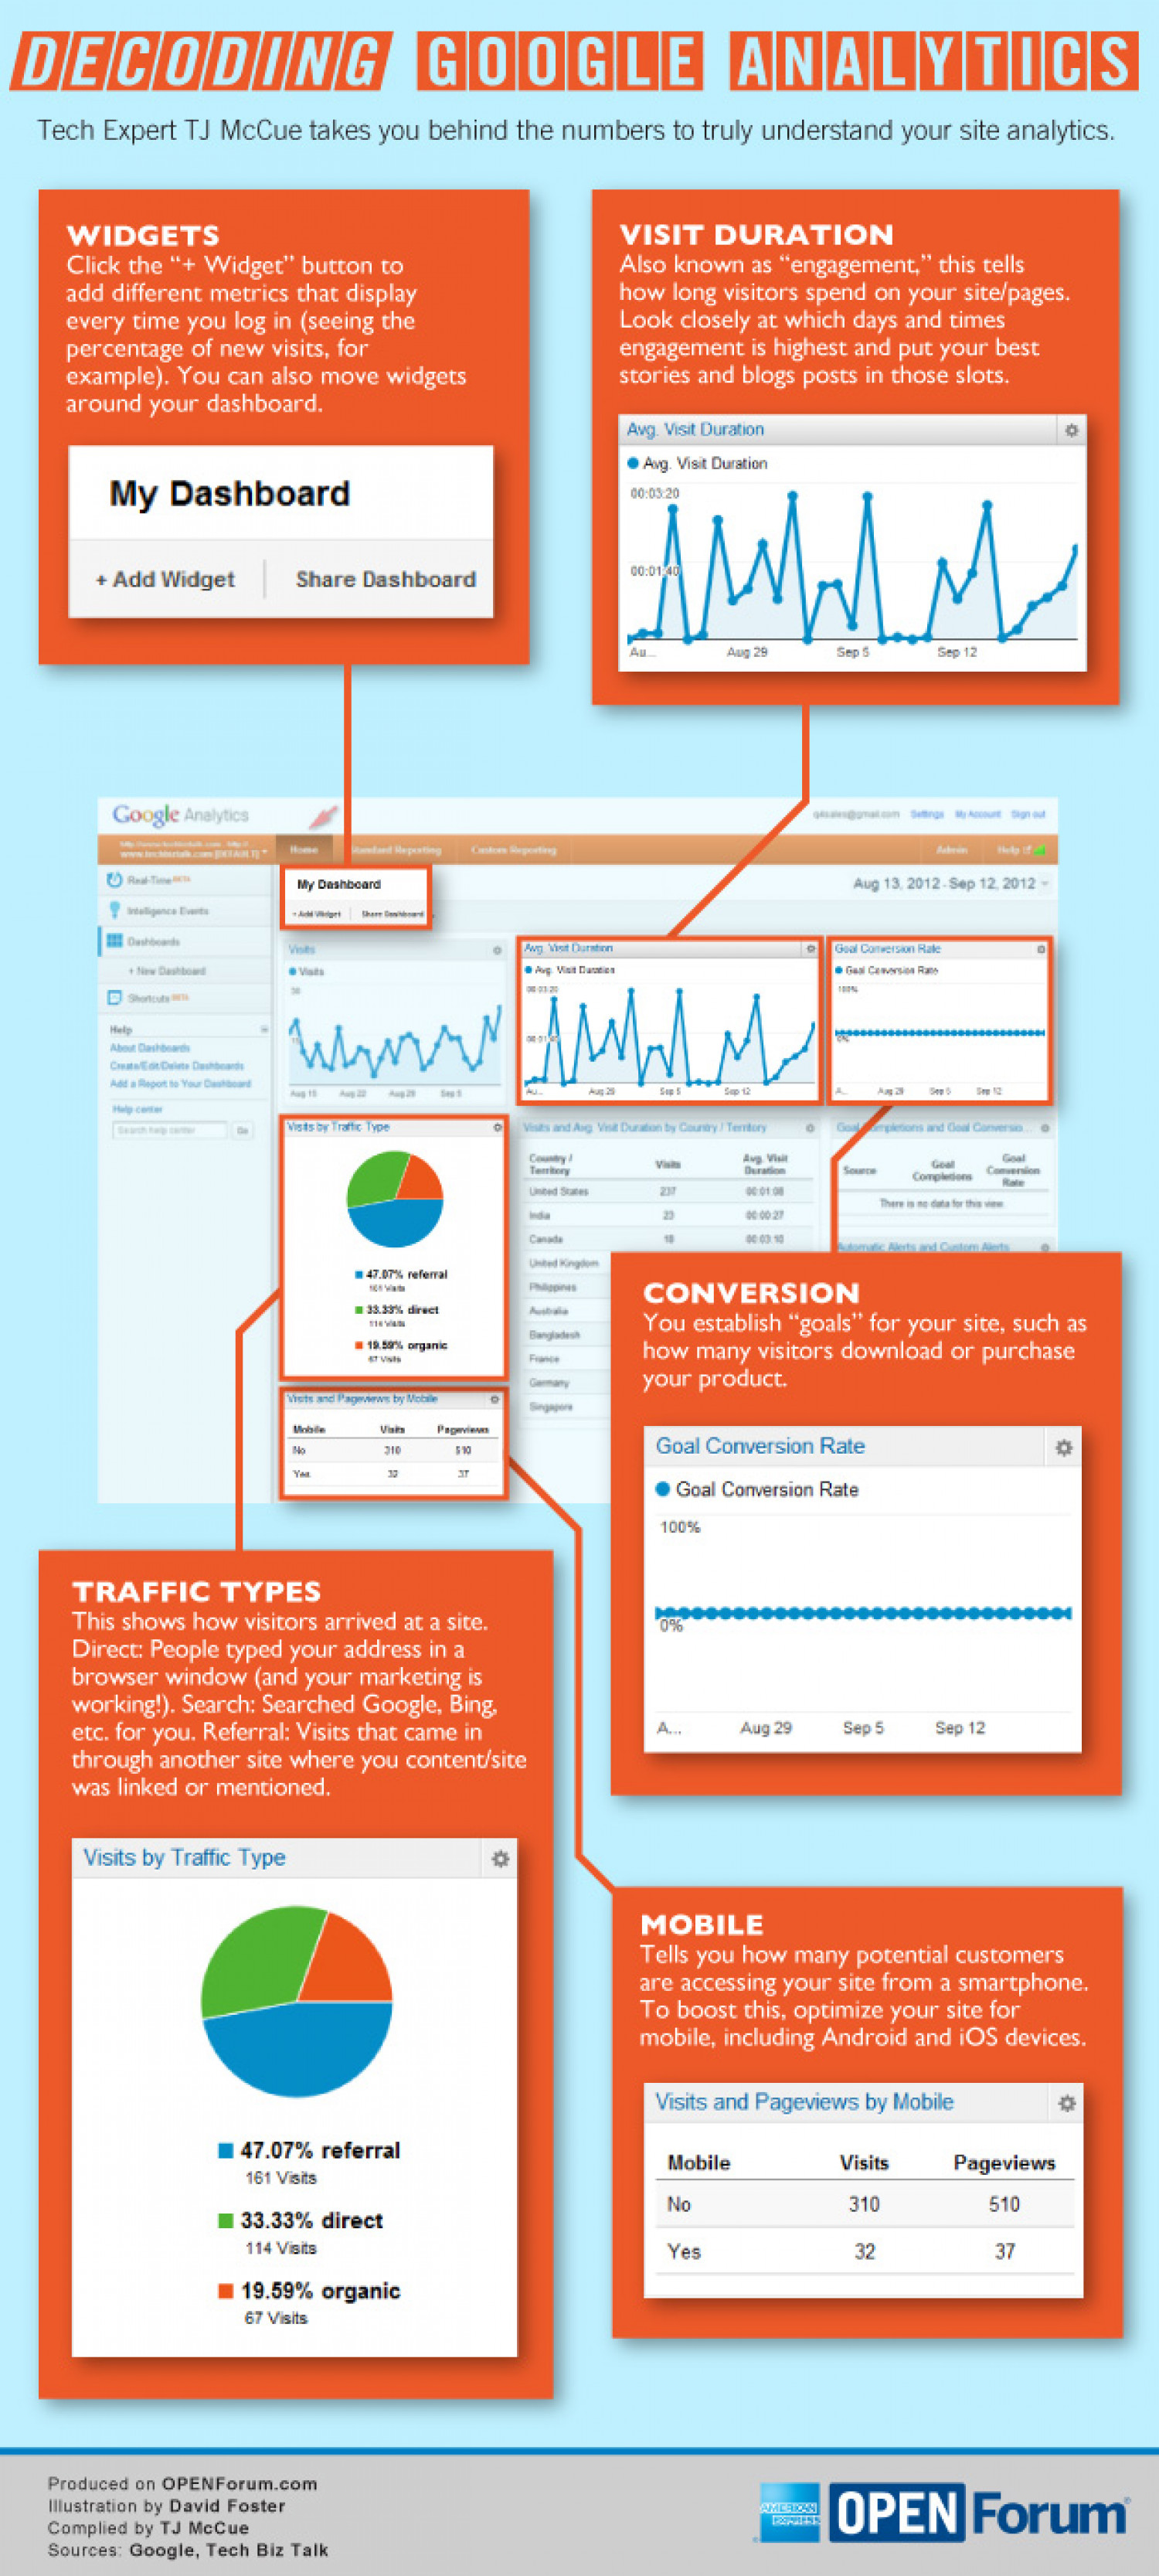 Decoding Google Analytics Infographic